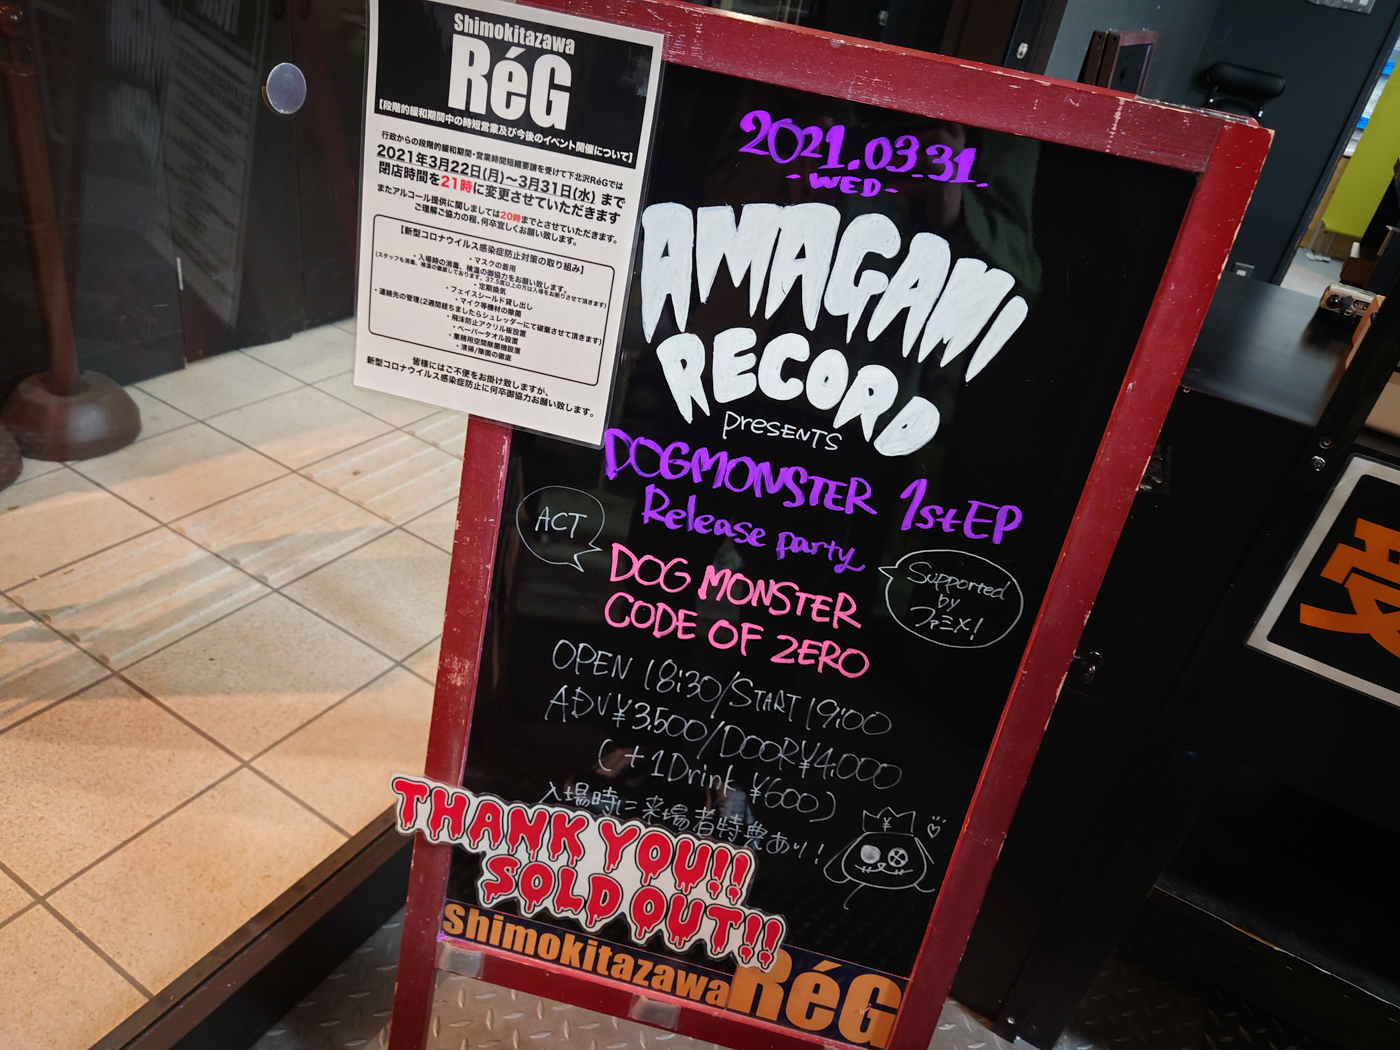 AMAGAMI RECORD presents 『DOG MONSTER 1st EP Release party』supported by ファミメ!@下北沢ReG